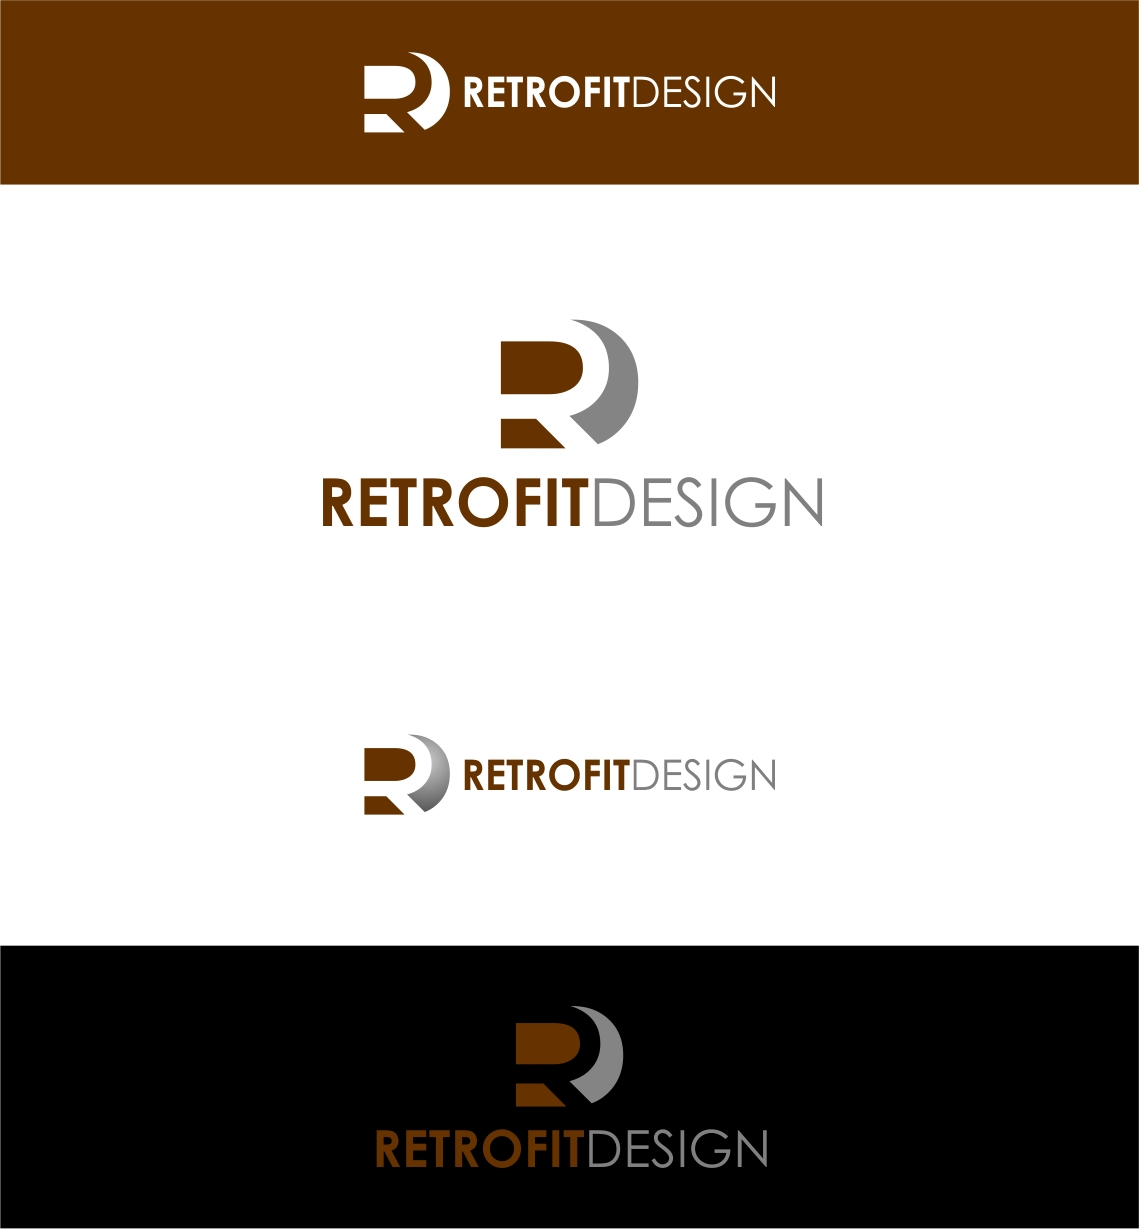 Logo Design by haidu - Entry No. 189 in the Logo Design Contest Inspiring Logo Design for retrofit design.